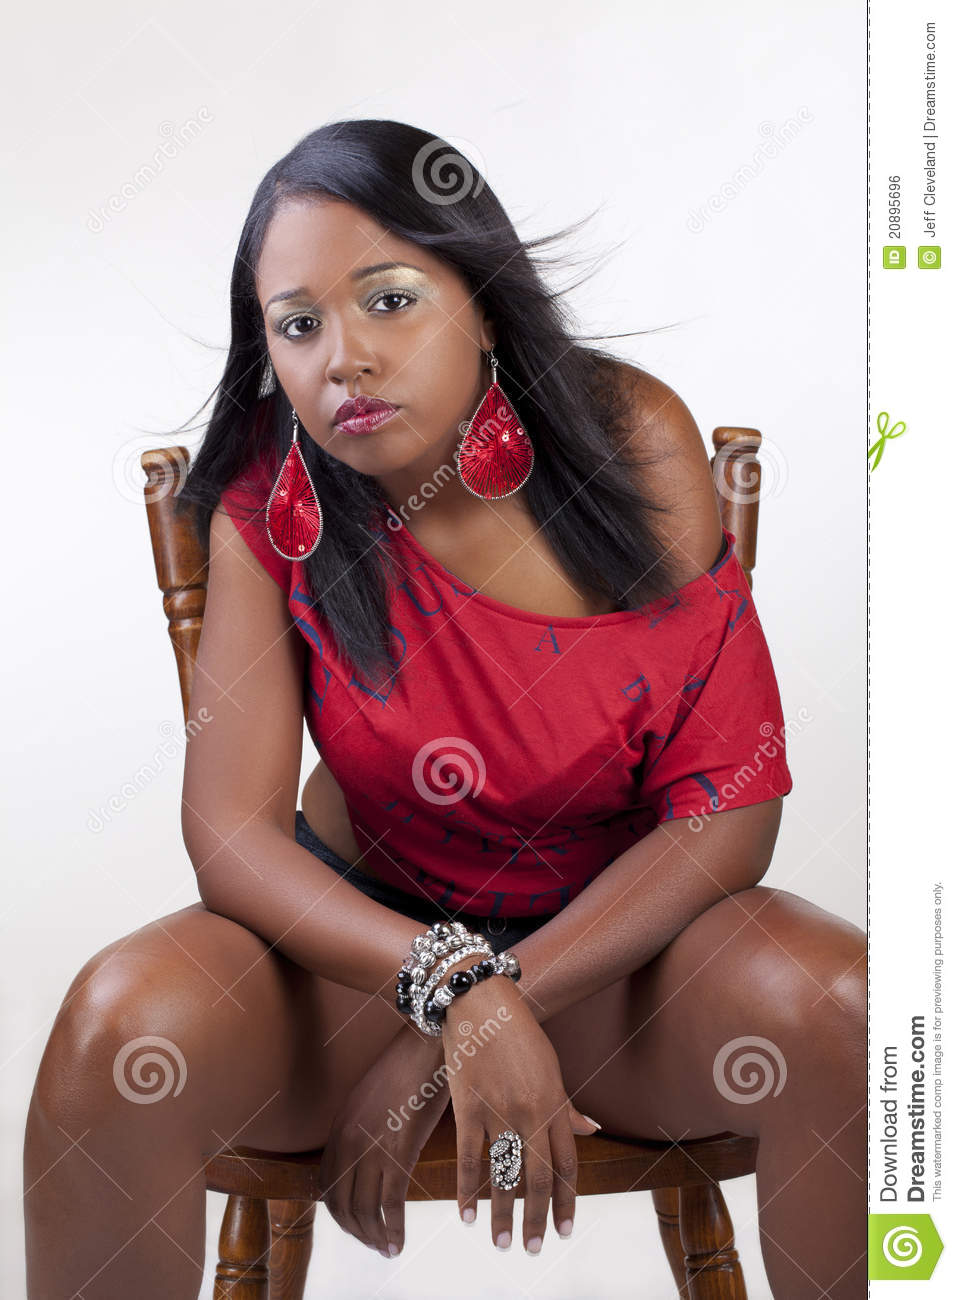 More similar stock images of ` Young attractive confident black woman ...